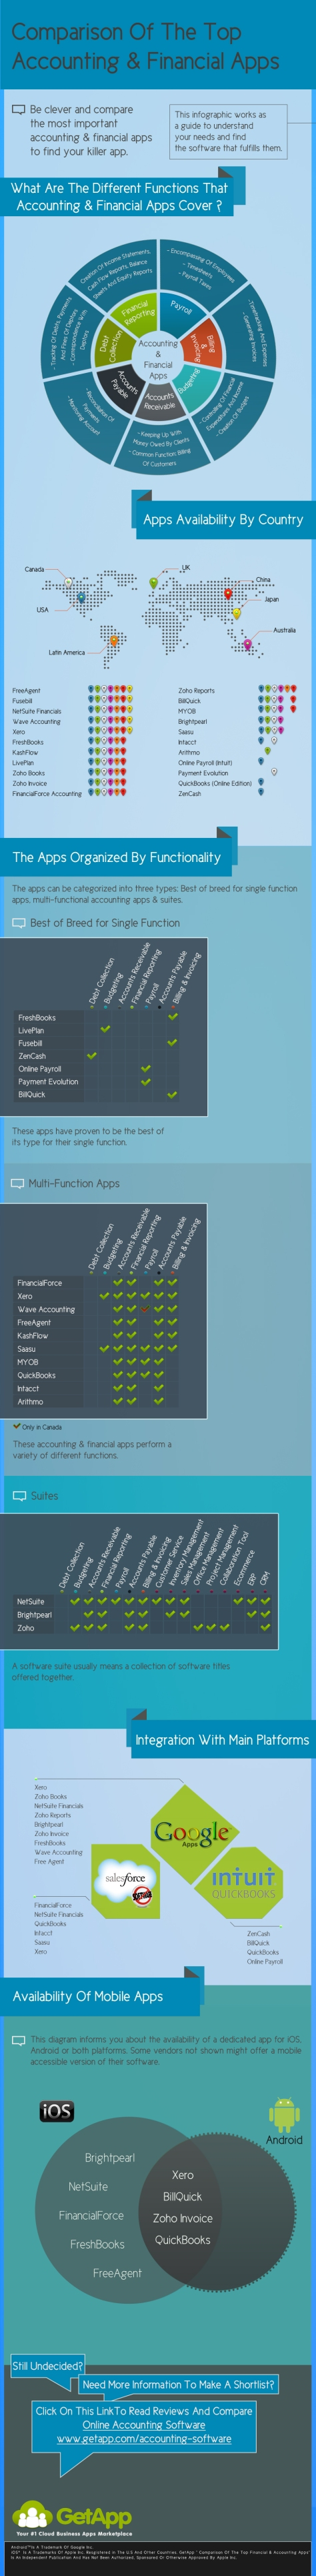 comparison-of-the-top-accounting--financial-apps_50ab5112e98d4